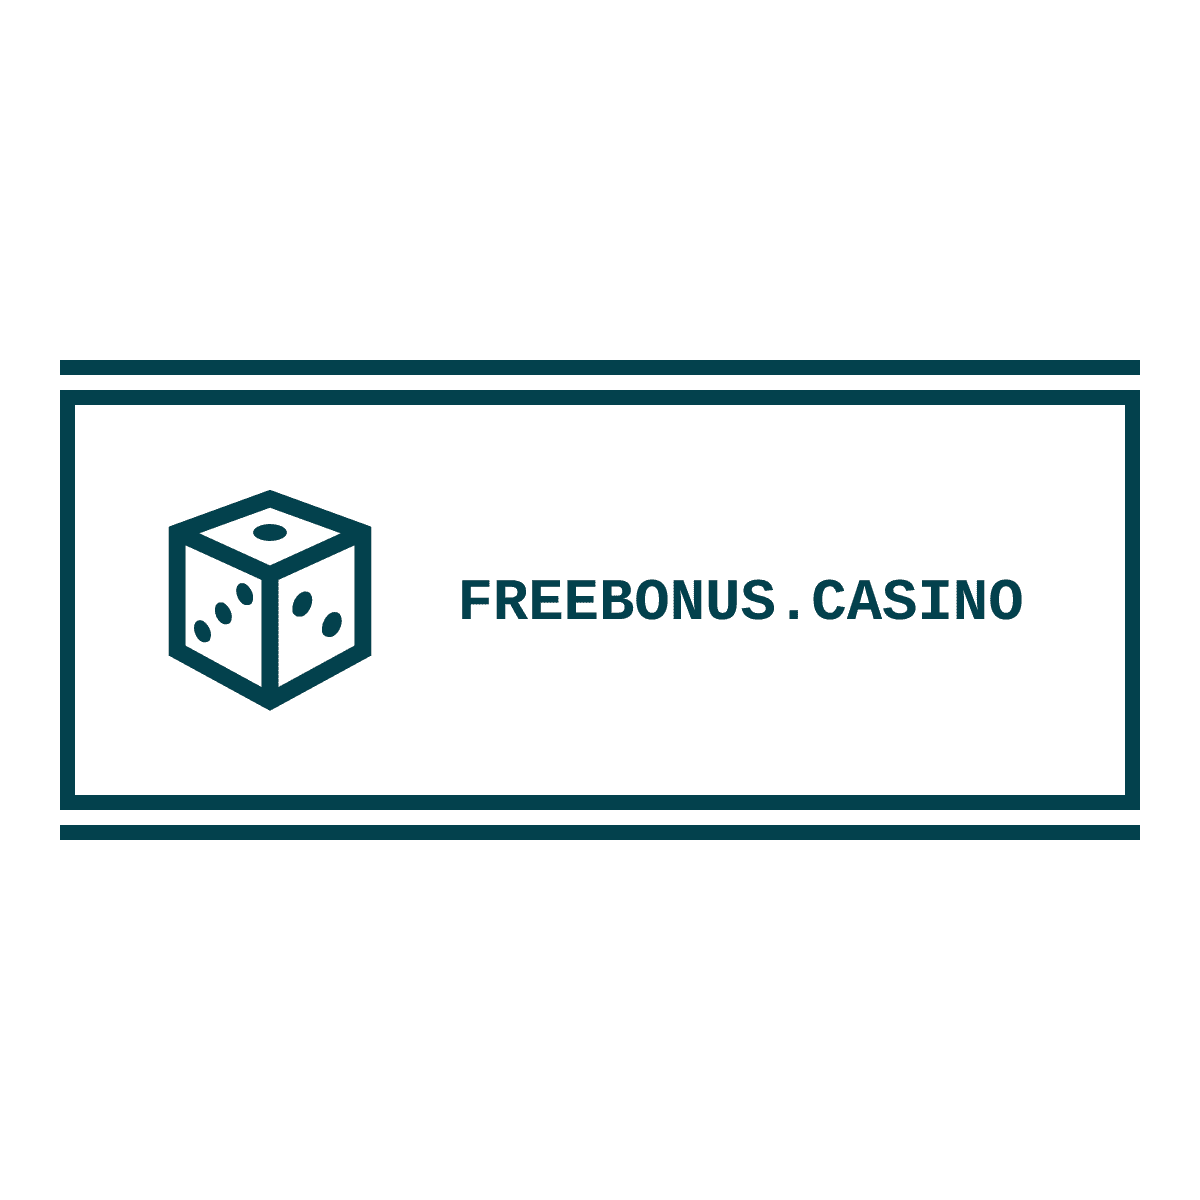 FreeBonus.Casino